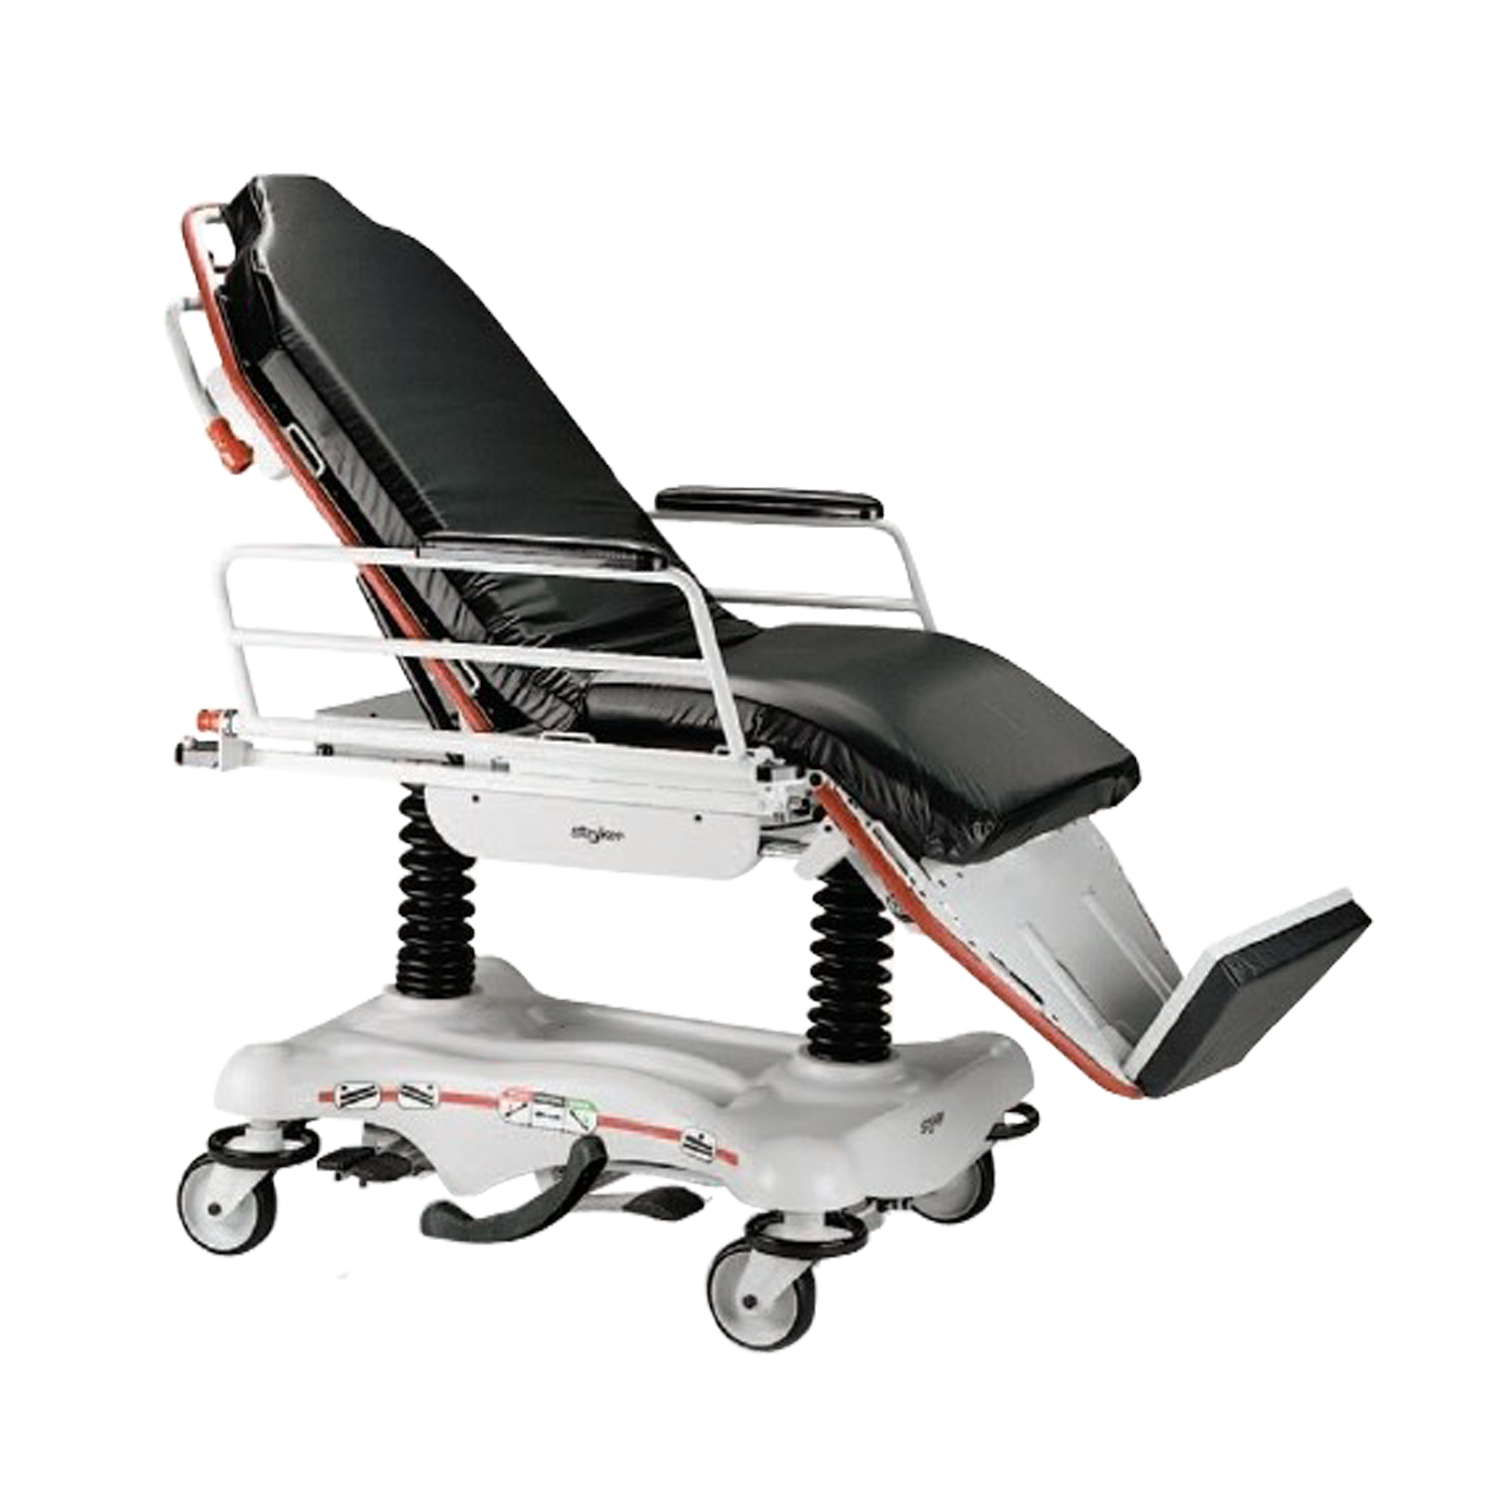 Stretcher Chair Stryker 5050 Mobile Surgery Table